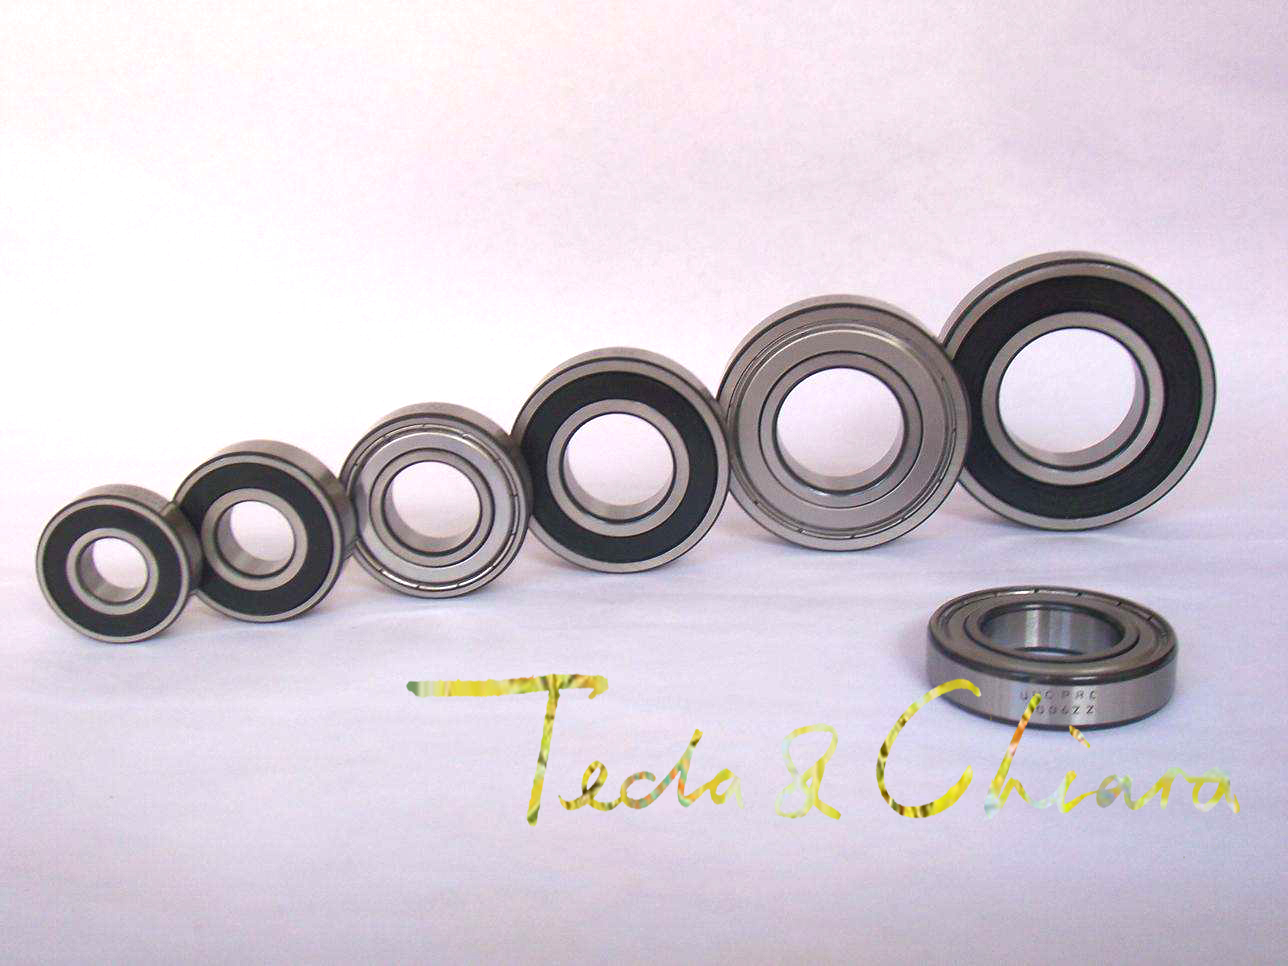 604 604ZZ 604RS 604-2Z 604Z 604-2RS ZZ RS RZ 2RZ Deep Groove Ball Bearings 4 x 12 x 4mm High Quality 604 604zz 604rs 604 2z 604z 604 2rs zz rs rz 2rz deep groove ball bearings 4 x 12 x 4mm high quality